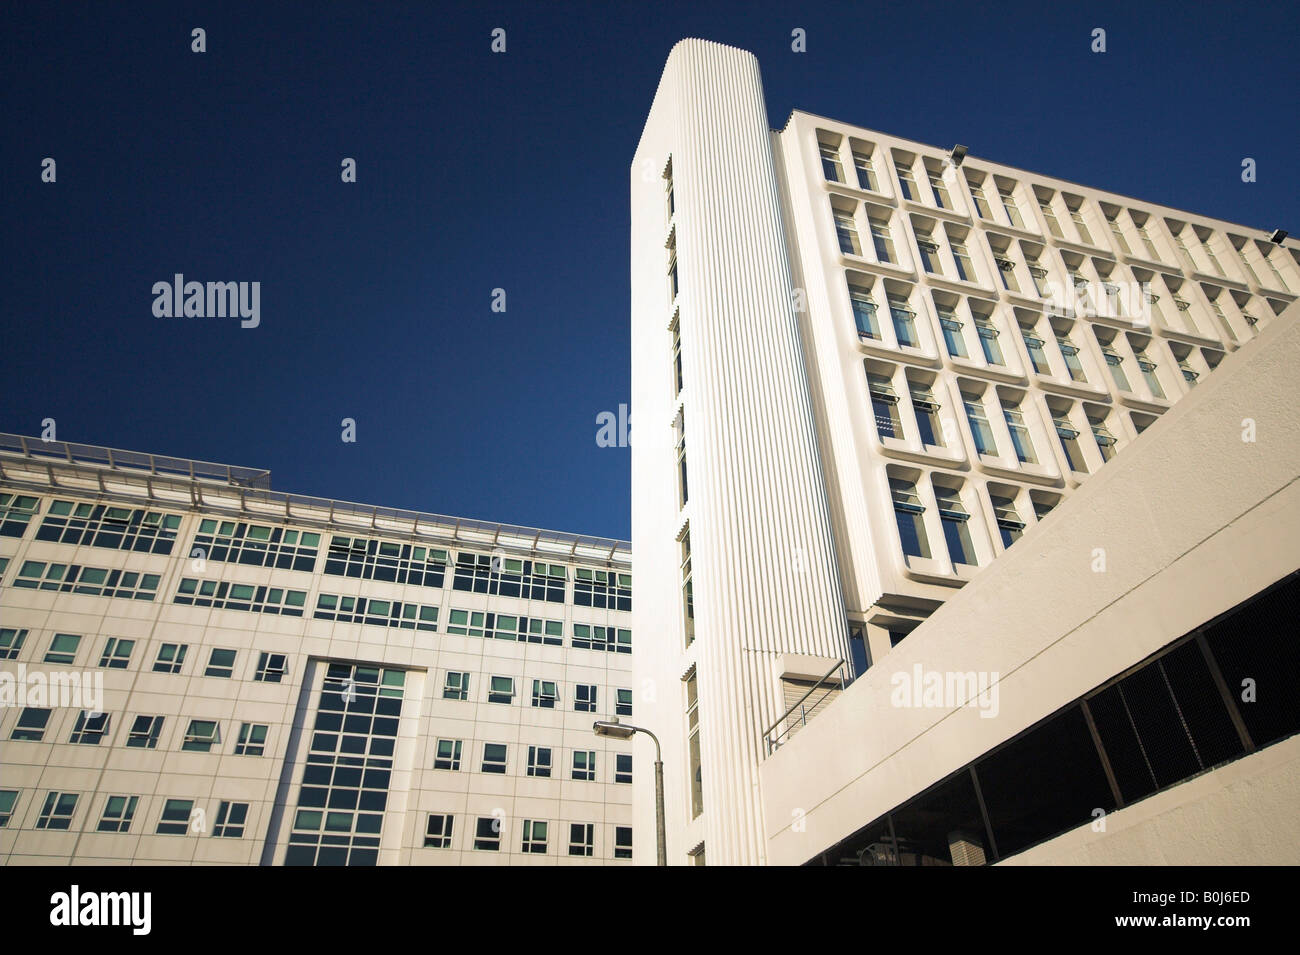 Riverside offices, Bruntwood, Trinity Bridge House, Inland Revenue building, Salford, Manchester, UK - Stock Image